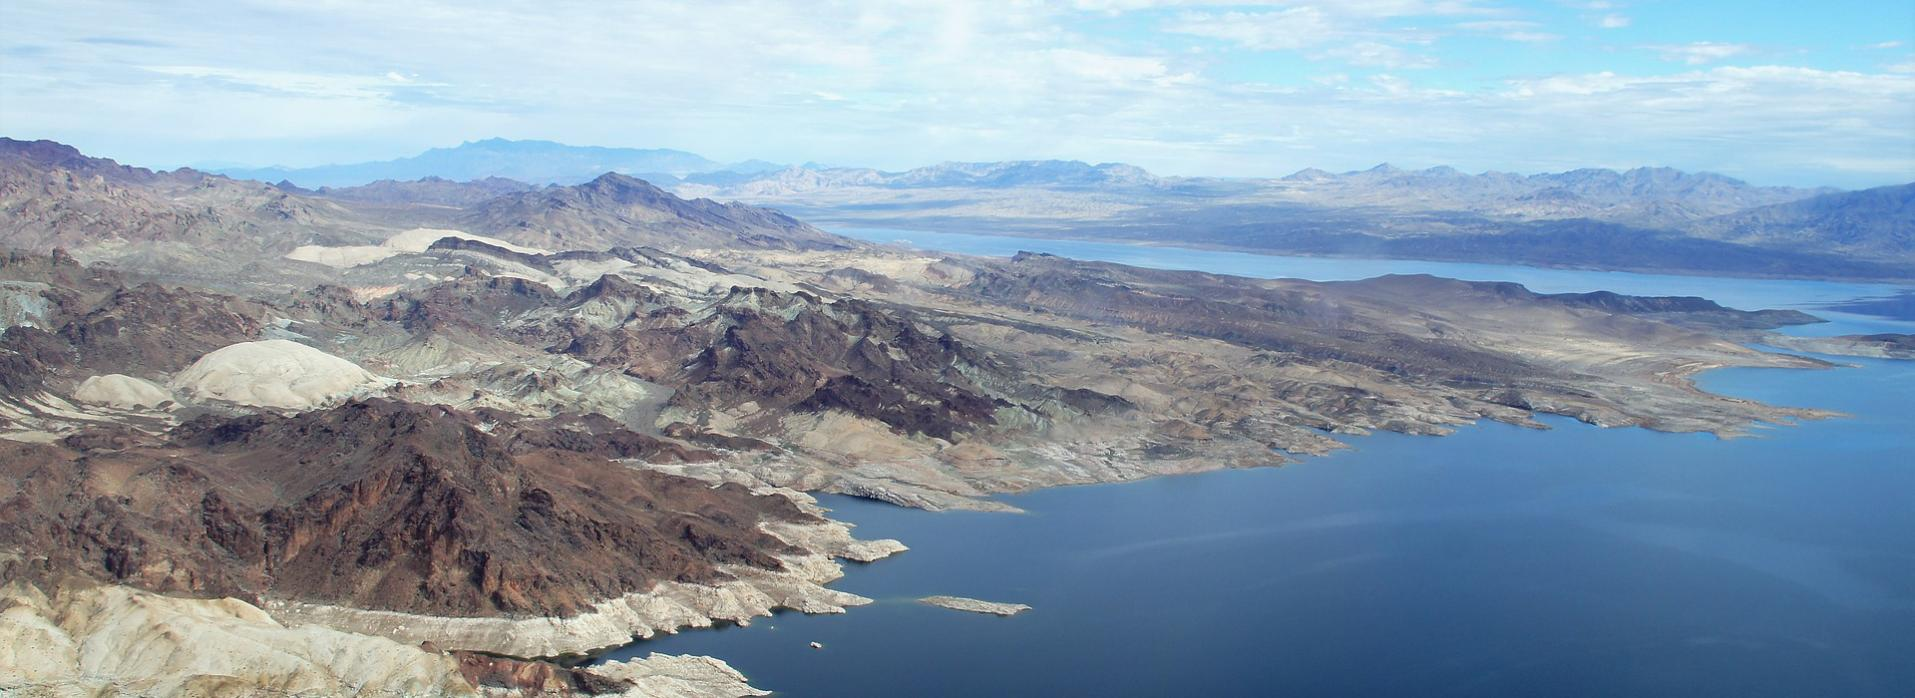 Lake Mead in Arizona